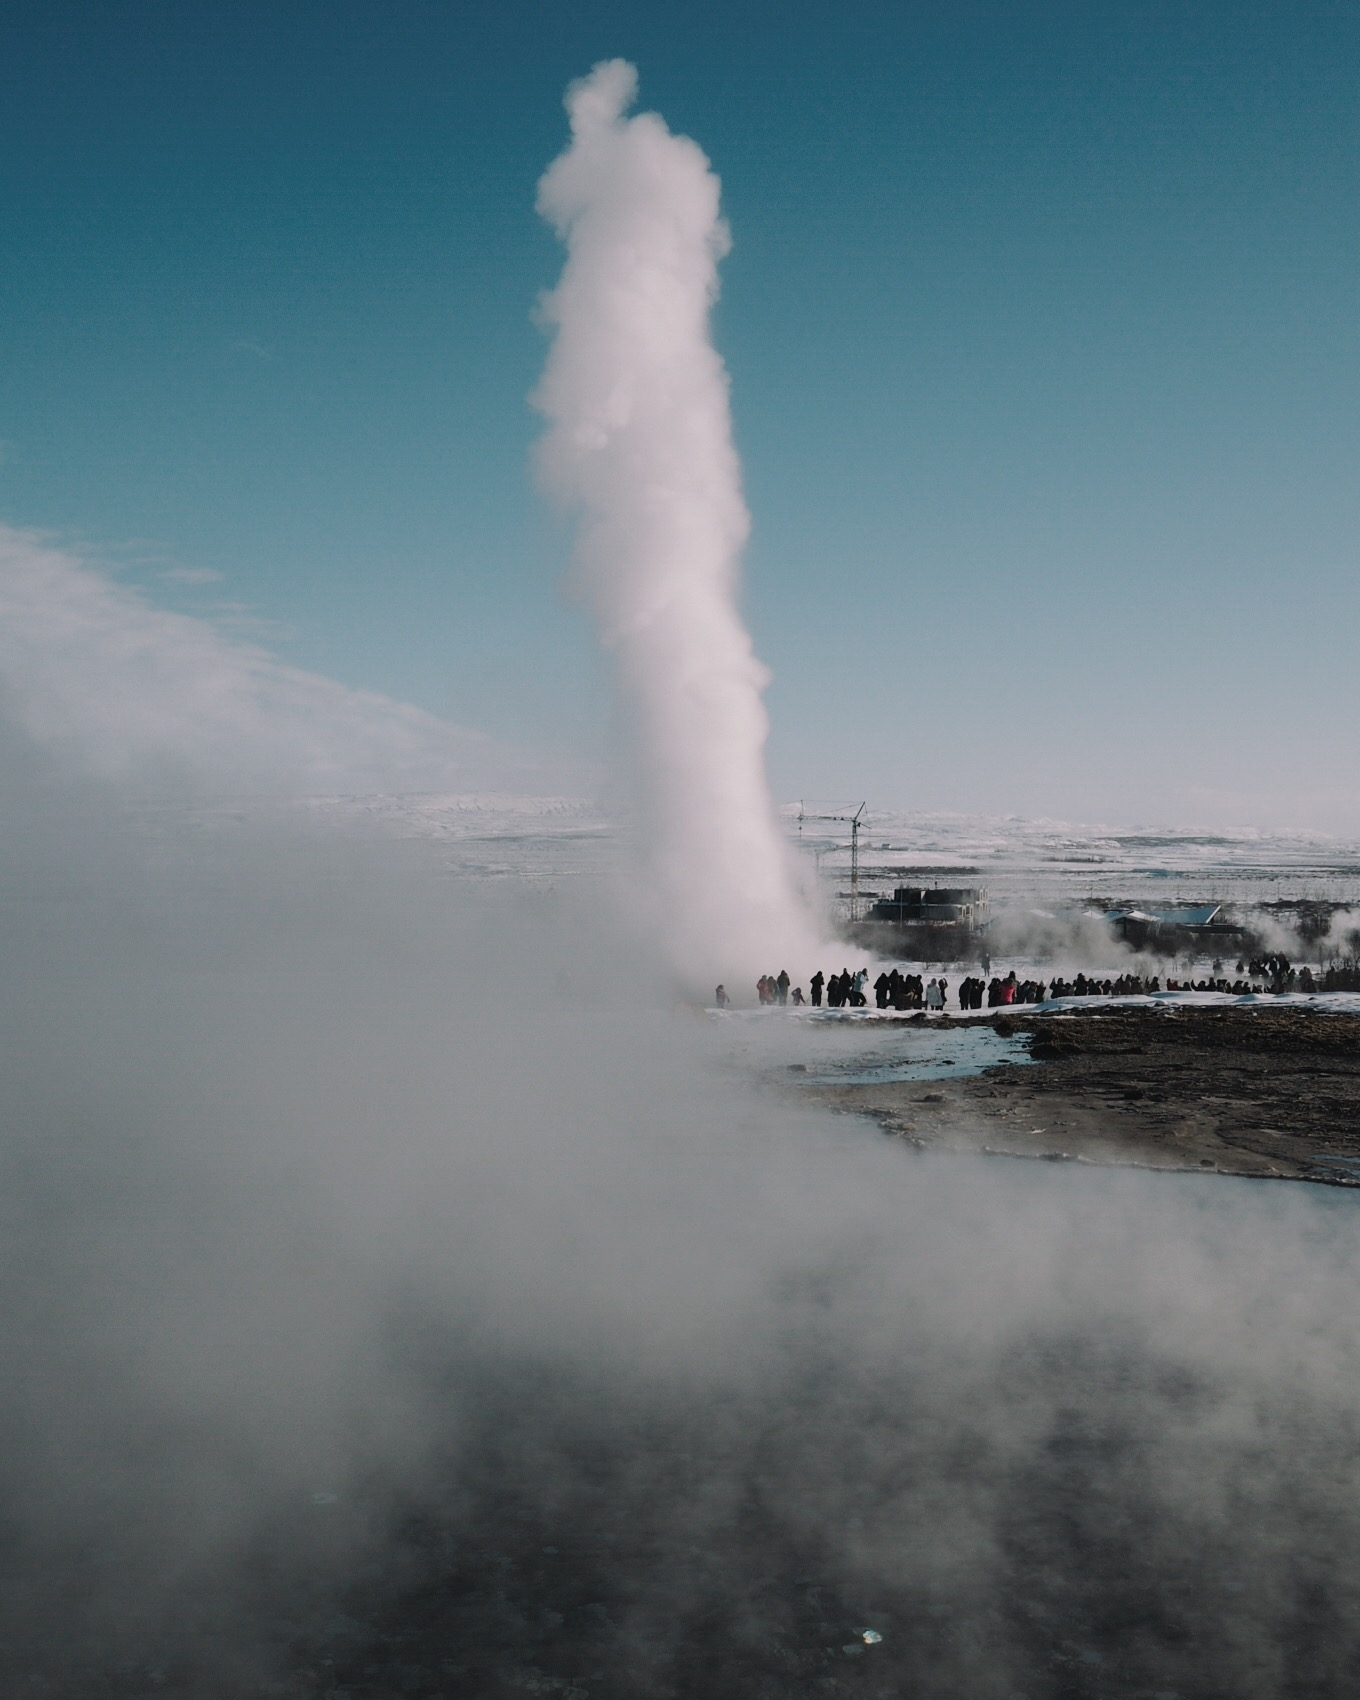 The very active geyser Strokkur at Haukadalur